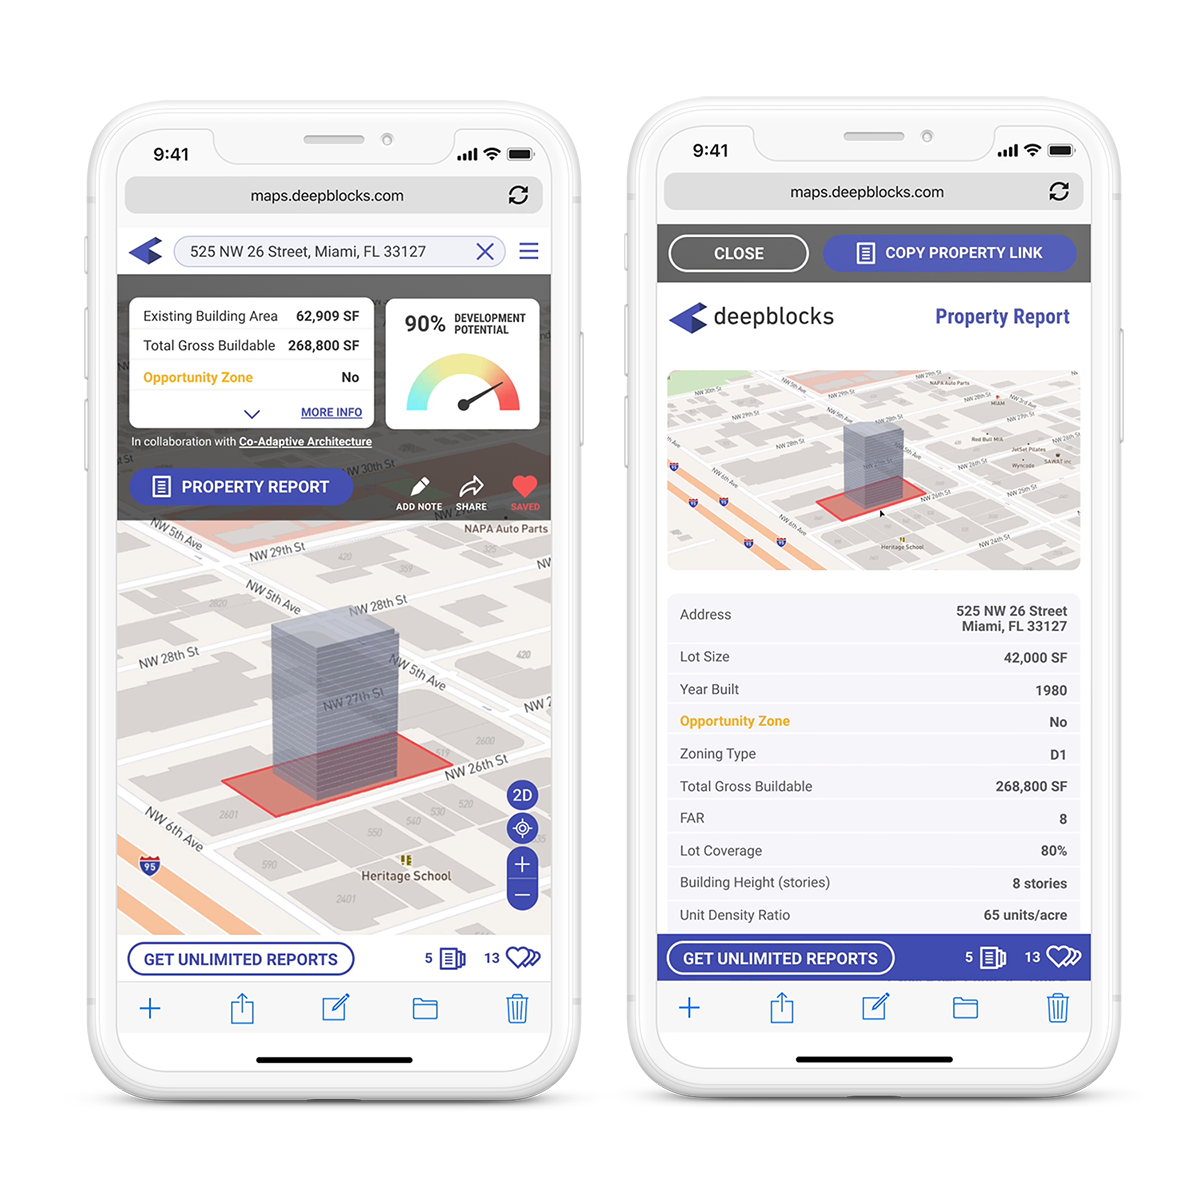 Deepblocks Maps app shown on two phones, with parcels in Opportunity Zones and data such as Total Gross Buildable, Lot Size, Uses Allowed, Zoning Type, etc.